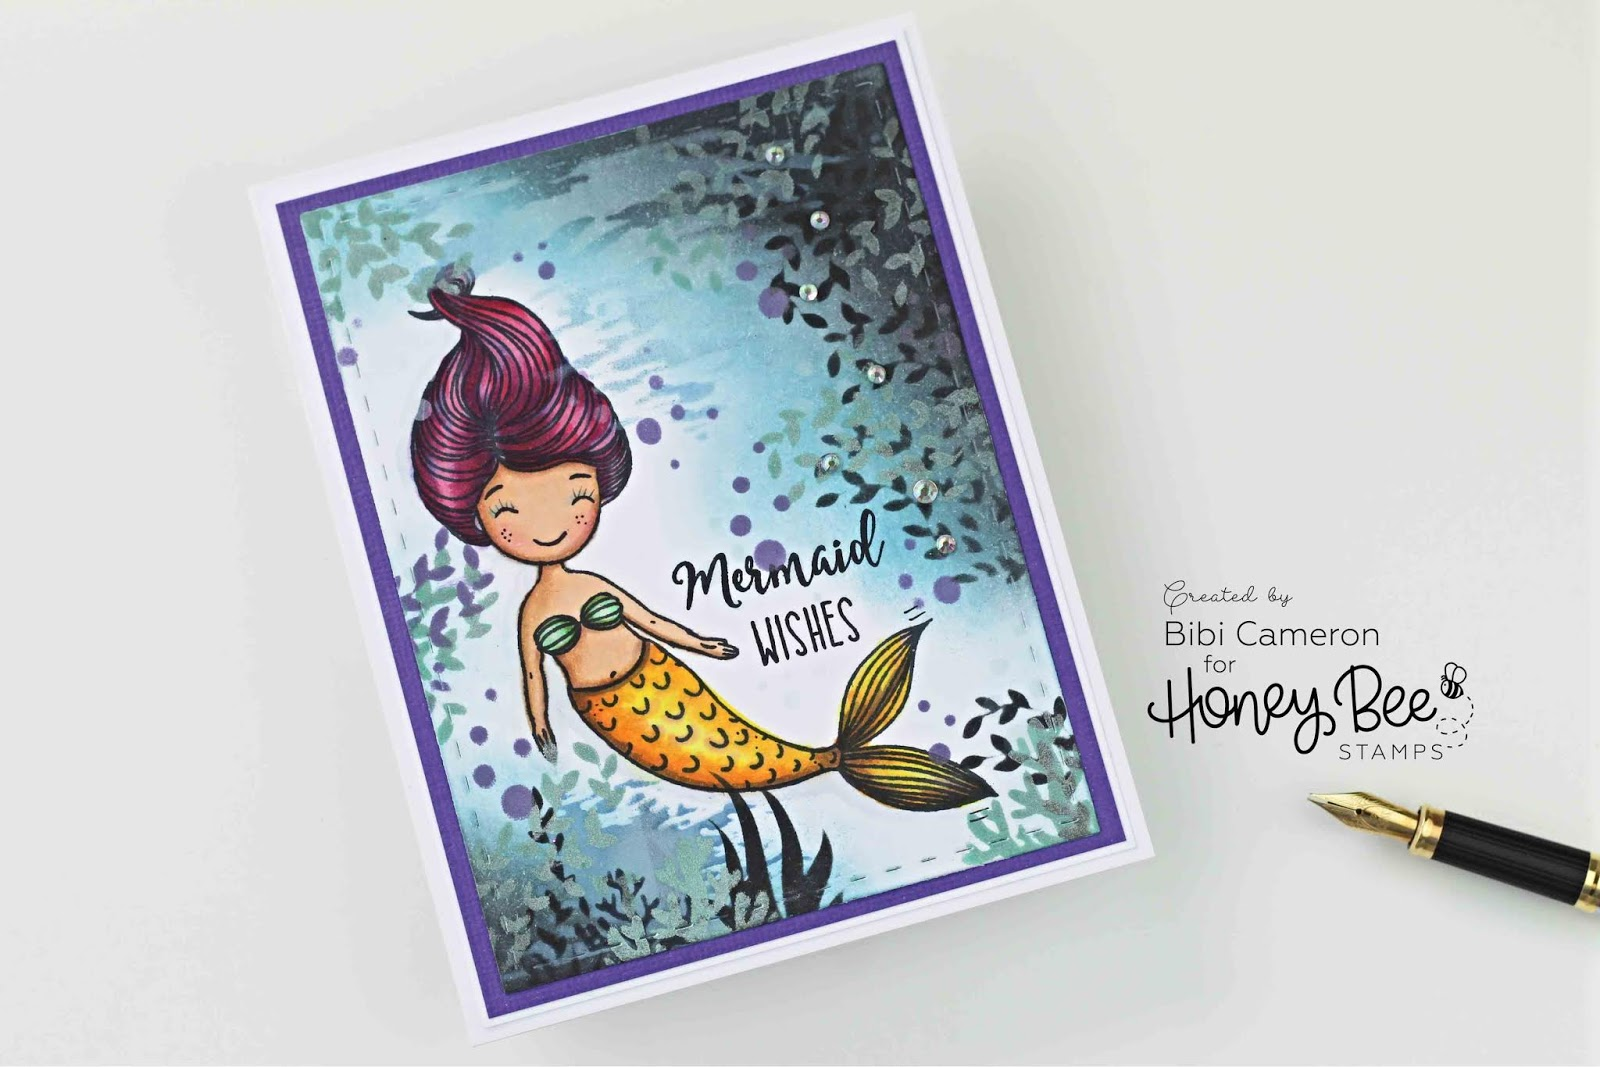 Mermaid Wishes with Honey Bee Stamps